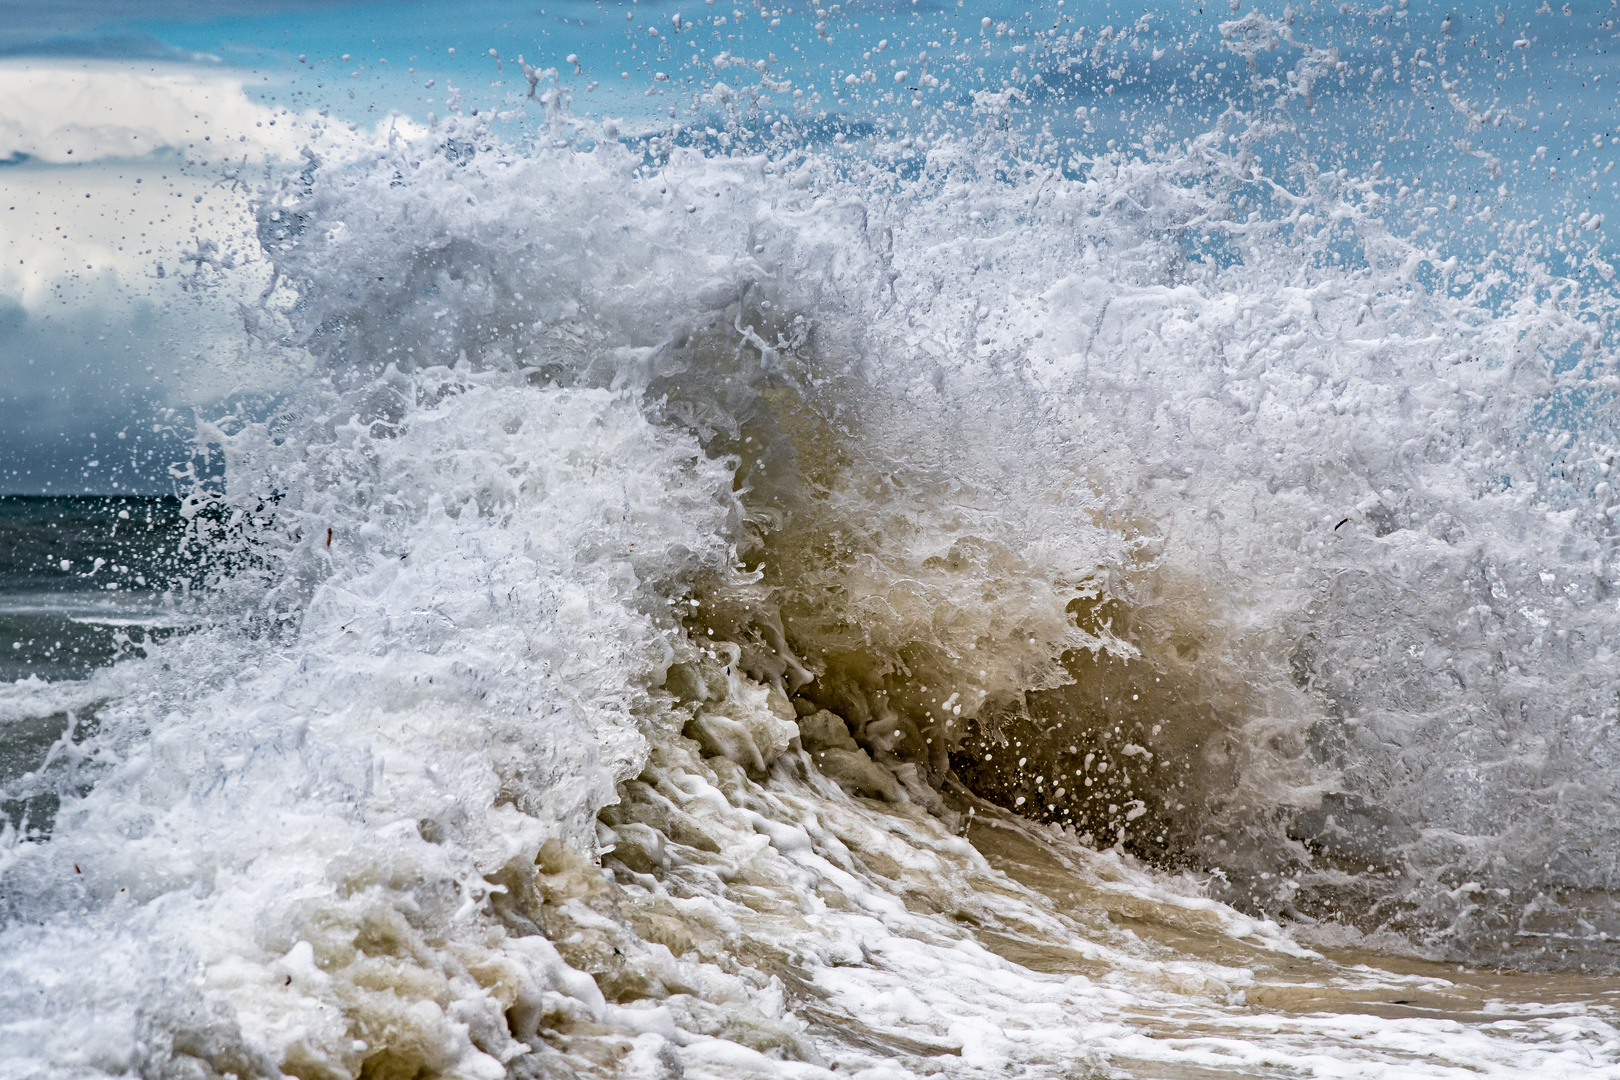 Battle of the gigantic waves